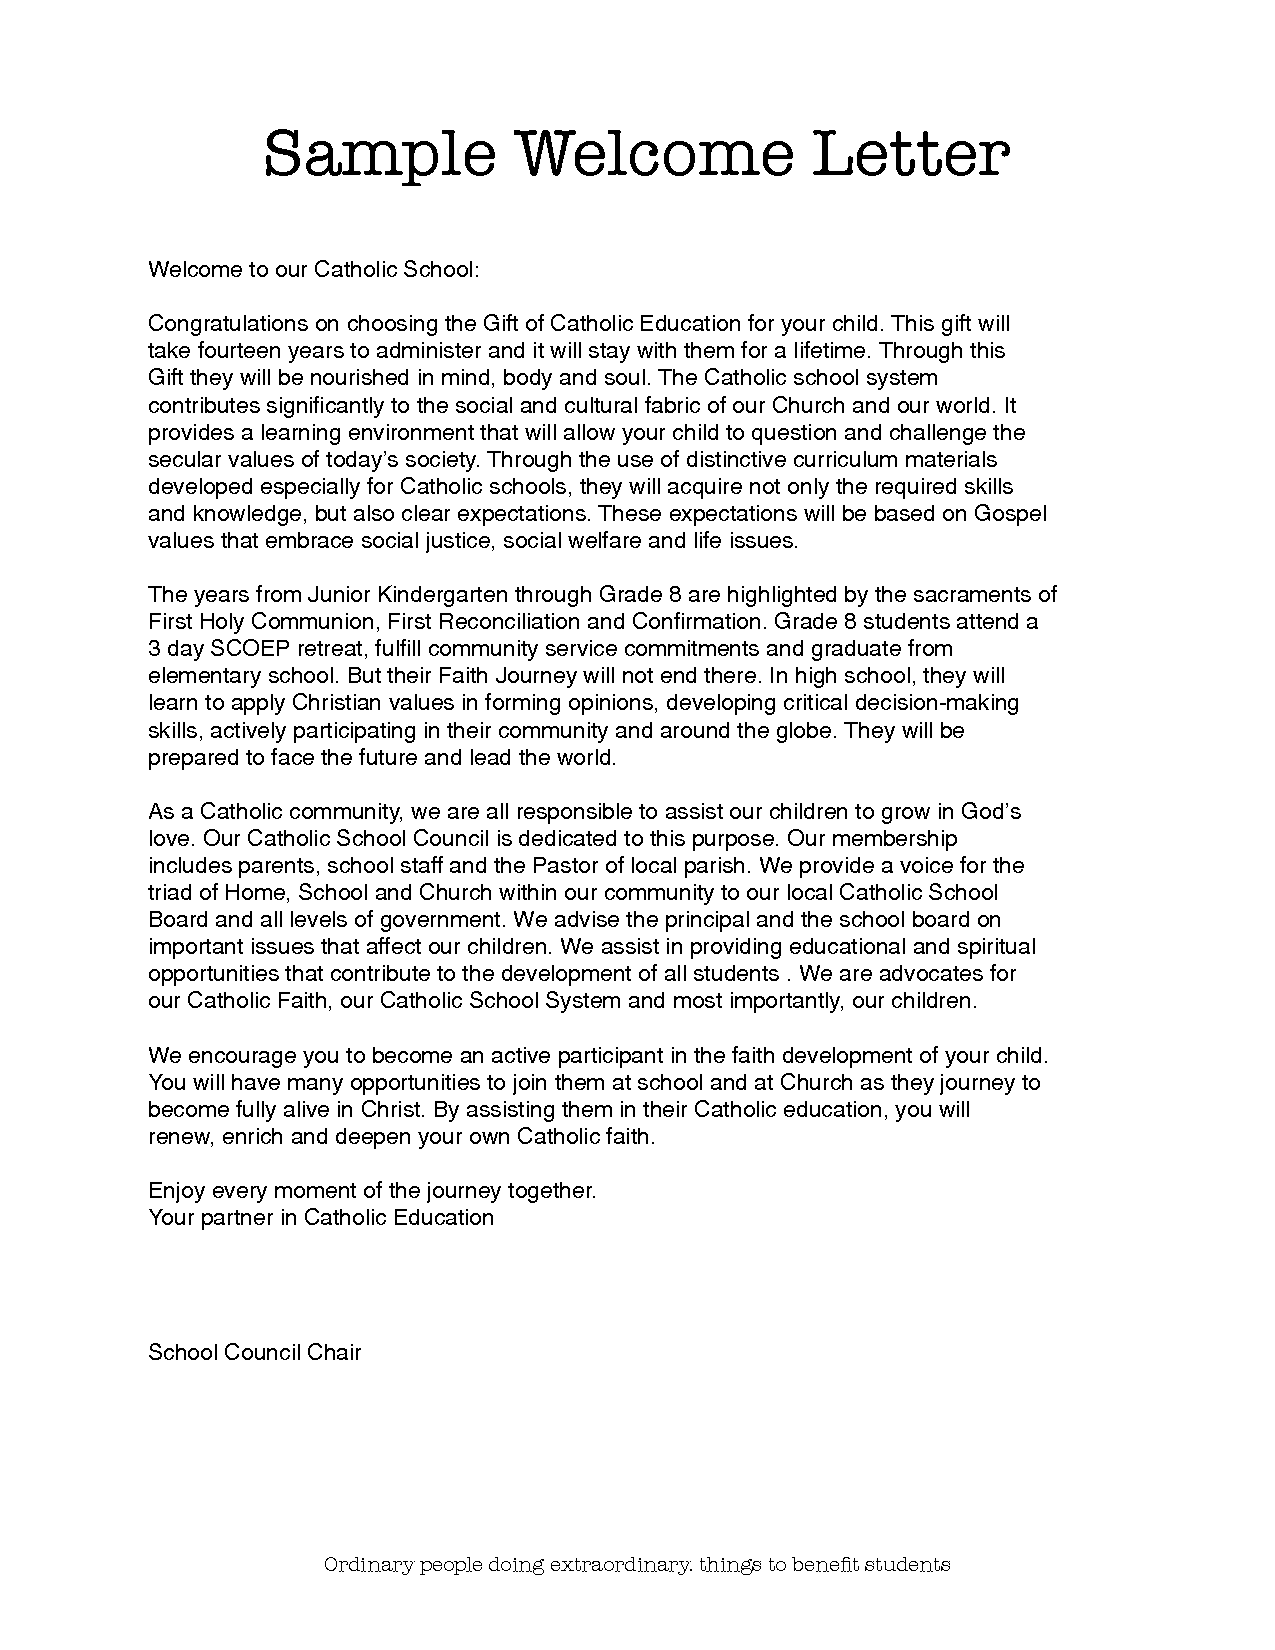 cca letter template - write a letter to student partnership worldwide